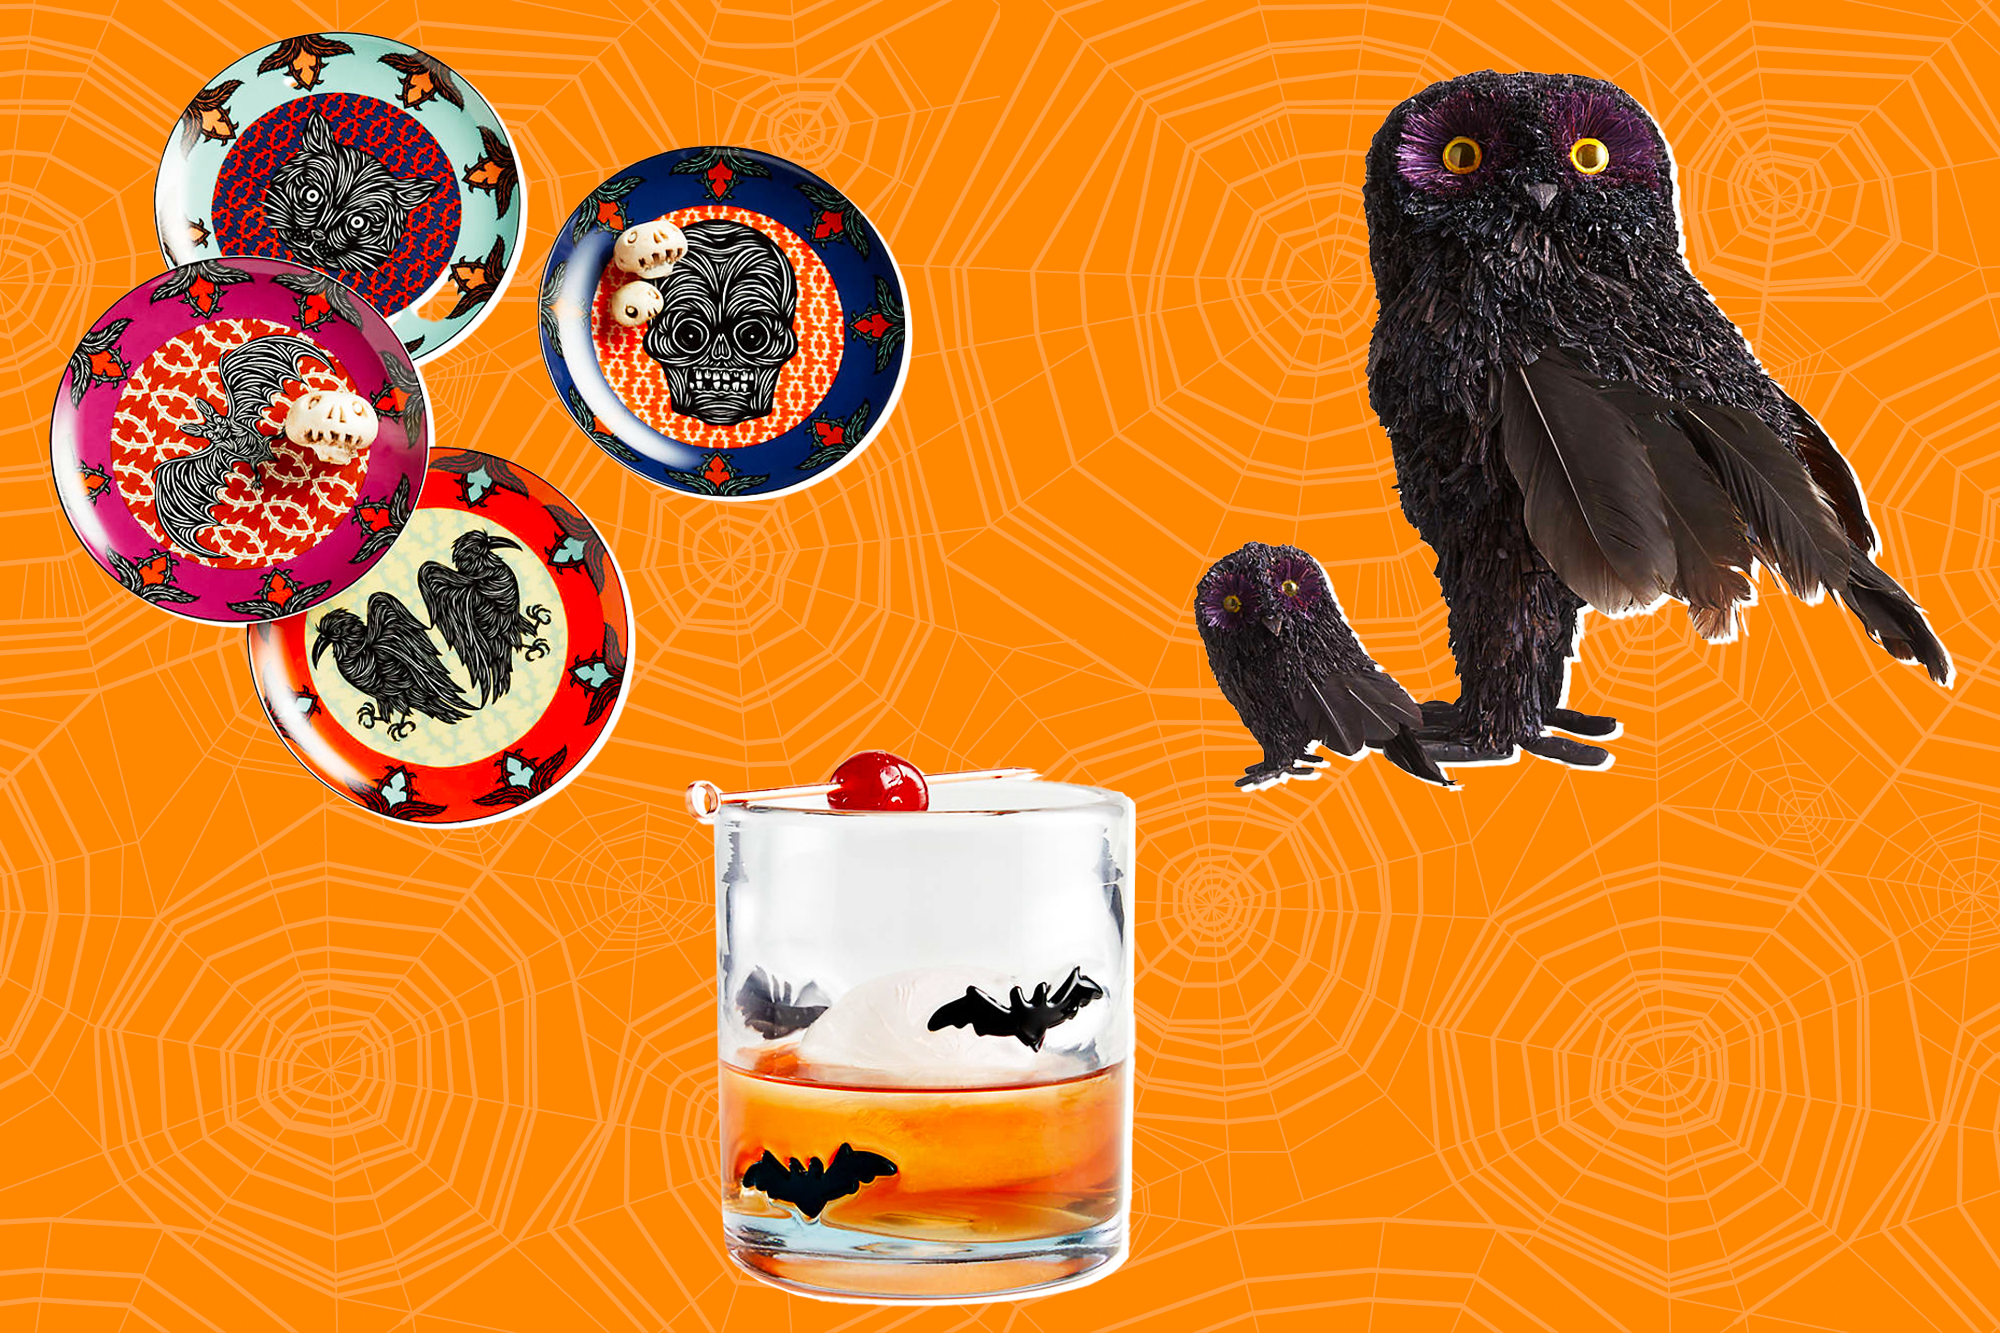 Halloween goods from Crate and Barrel on a spiderweb background.